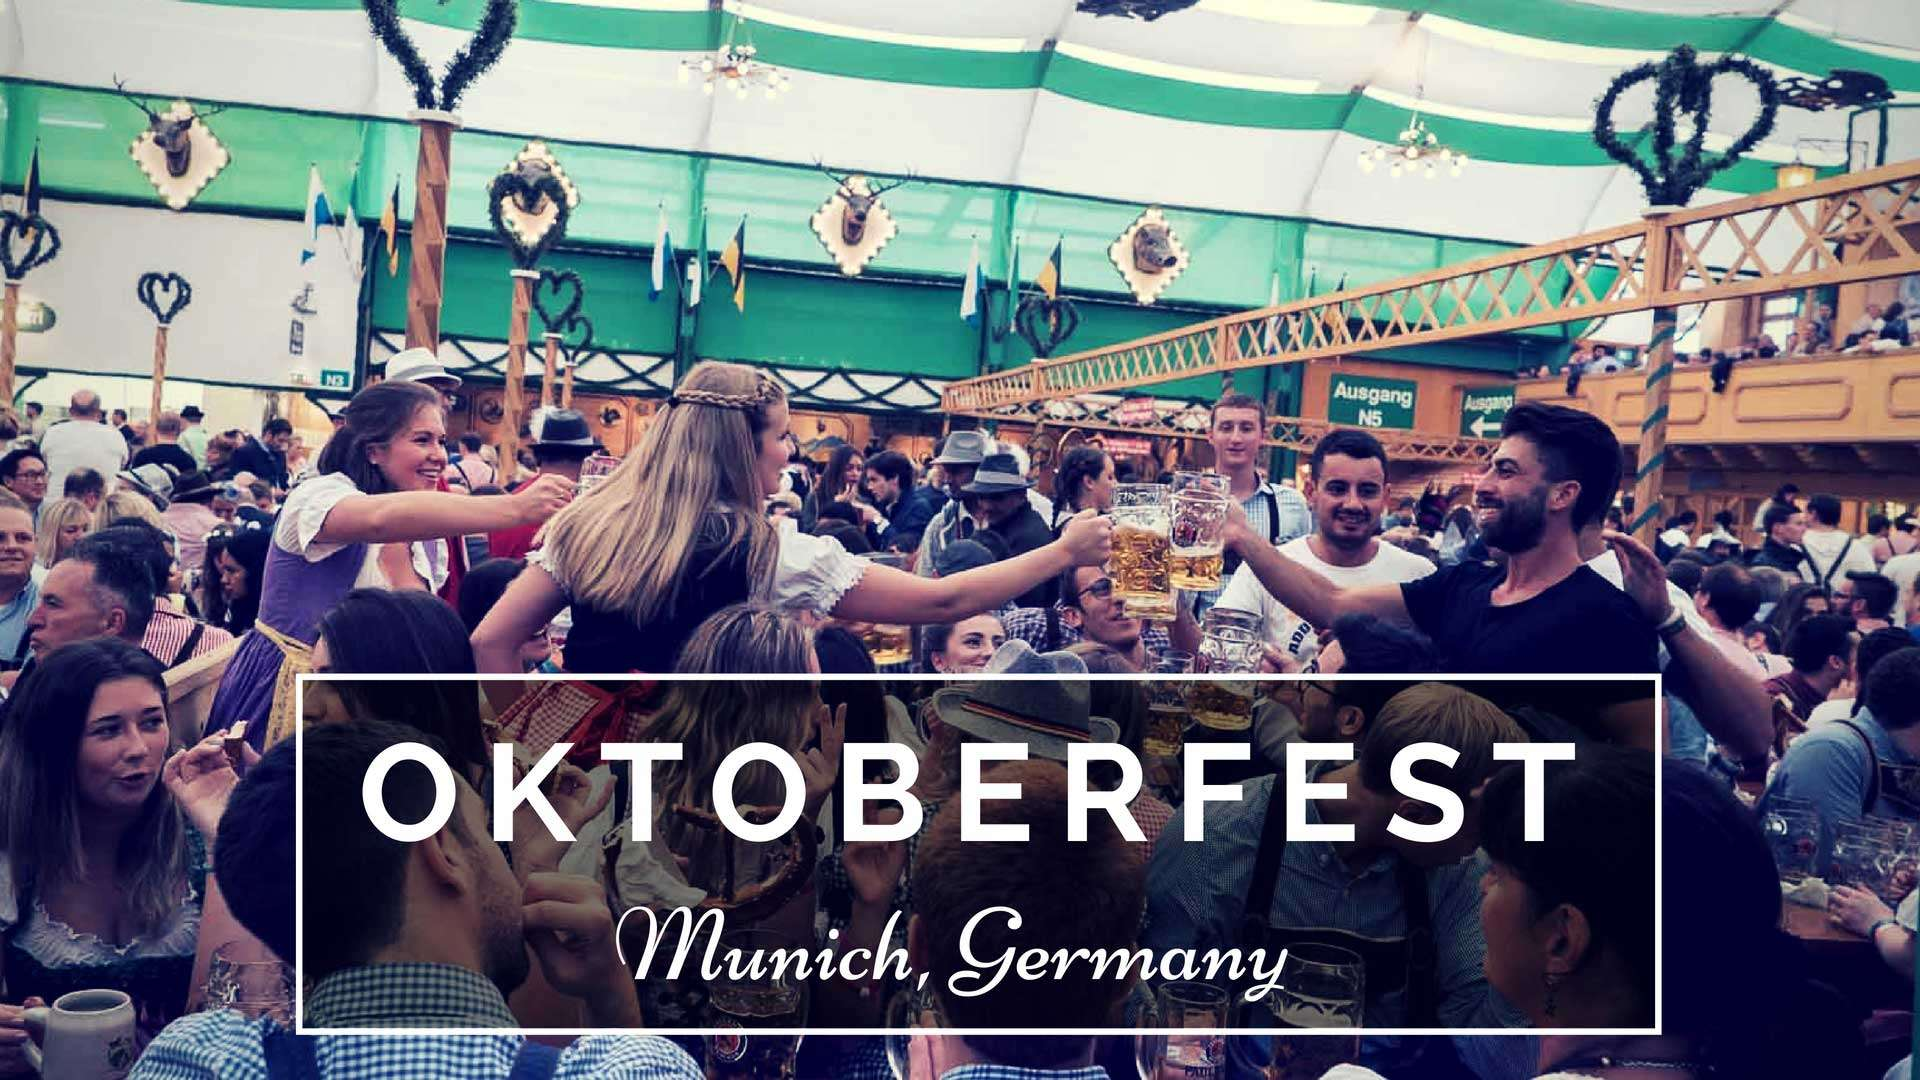 All You Need To Know About The Oktoberfest – Munich, Germany